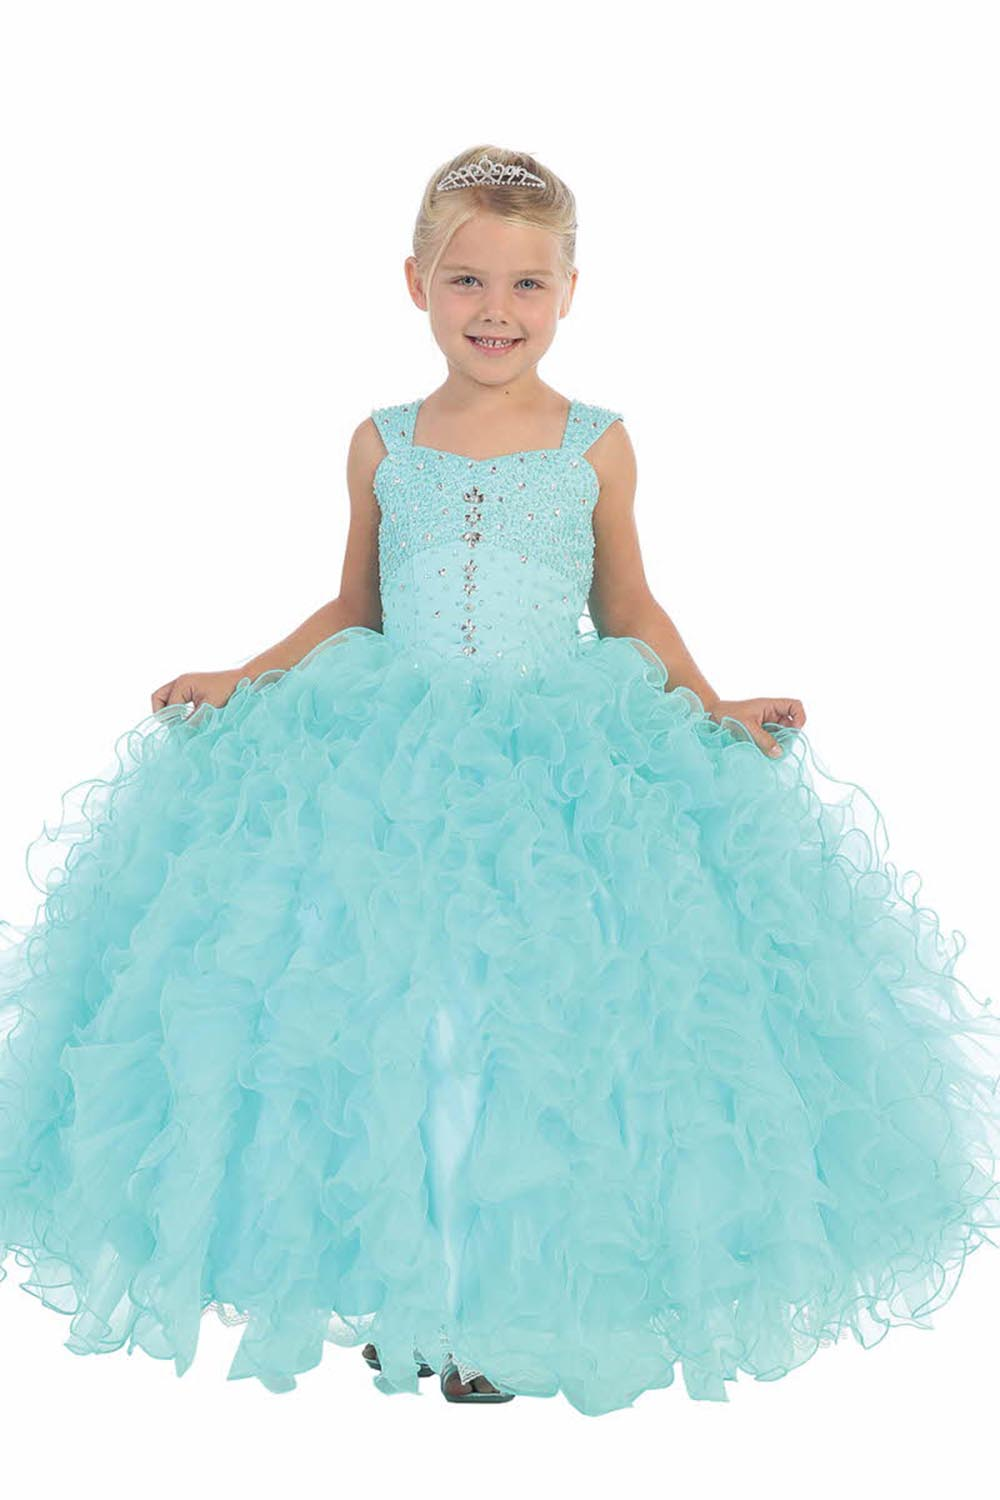 Ball Gown Flower Girls Dresses For Wedding Tulle Girl Birthday Party Dress Free Shipping Kids Prom Dresses Mother Daughter Dress